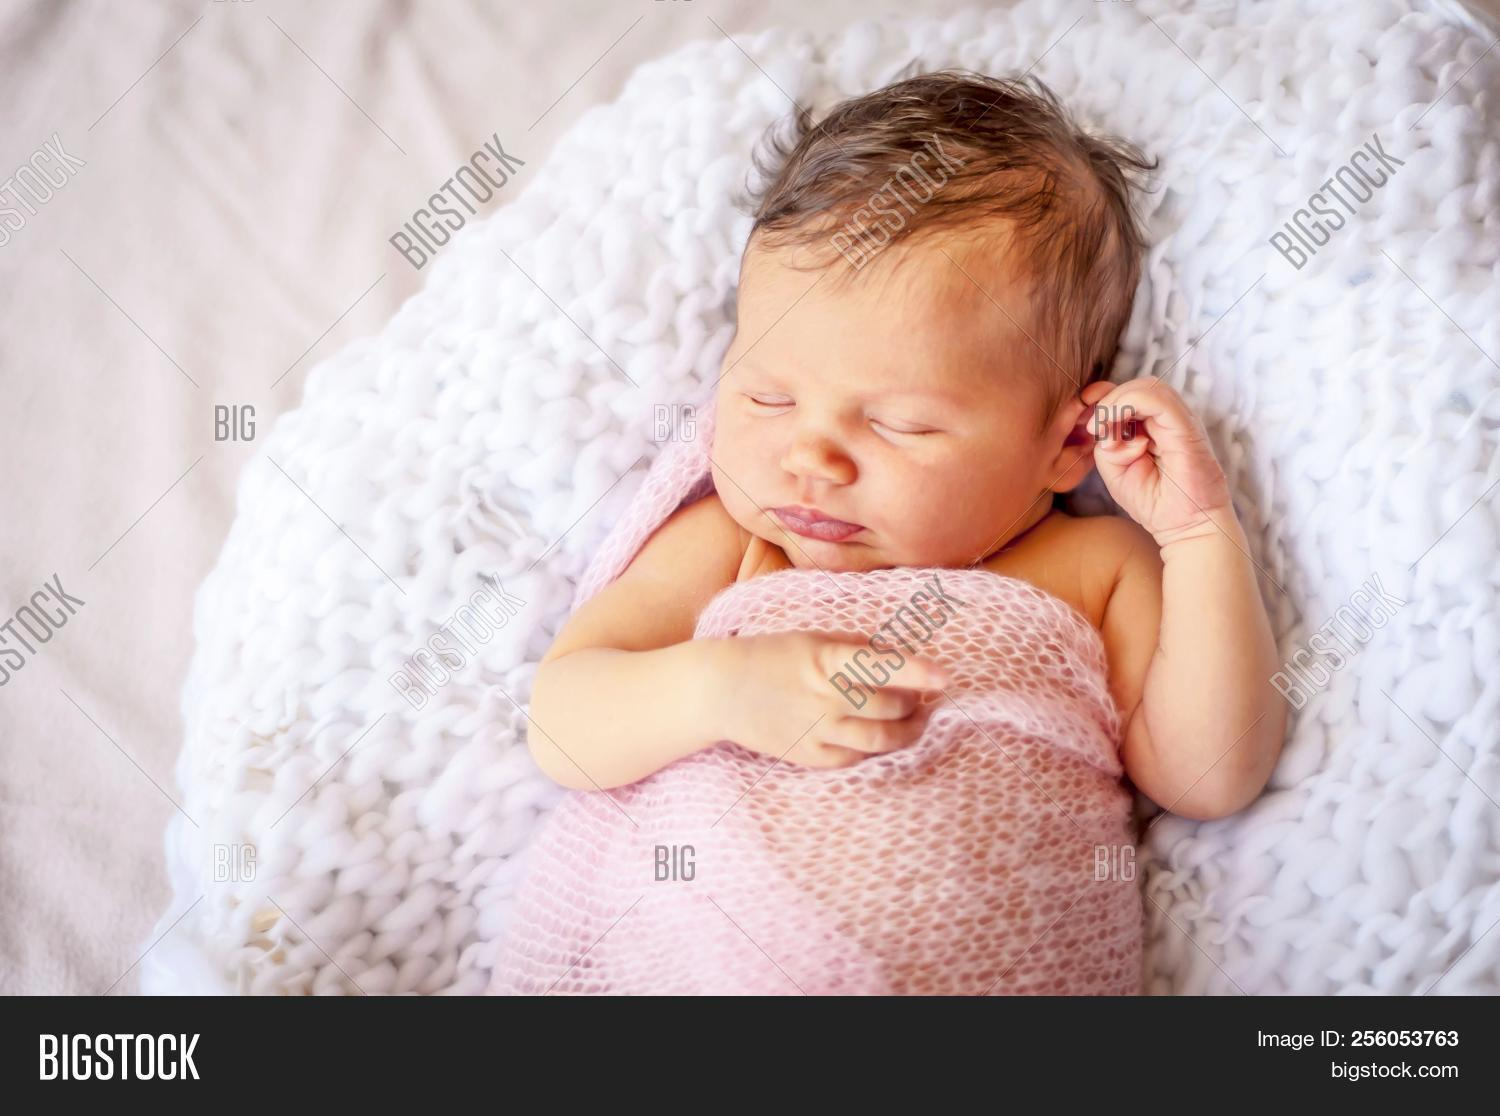 adorable,baby,beautiful,beauty,bed,care,caucasian,child,childhood,close,closeup,cute,daughter,days,dream,face,female,first,flower,girl,happy,healthy,human,image,infant,innocence,innocent,kid,life,little,model,new,newborn,person,photo,picture,pink,portrait,relax,session,sleep,small,soft,stock,sweet,tiny,toddler,up,white,young